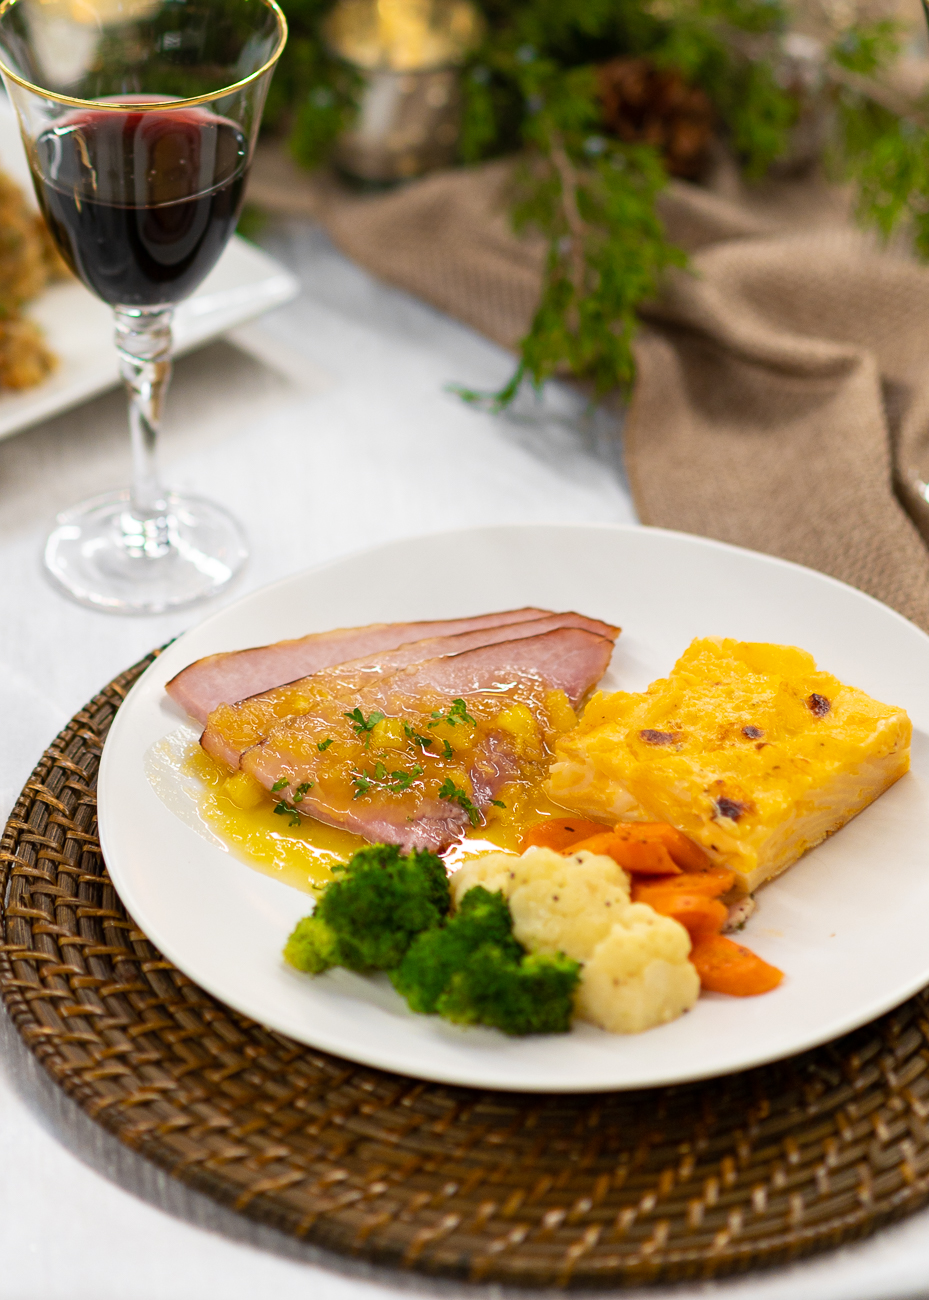 The Holiday Dinner Buffet. Pictured: hickory smoked ham with pineapple glaze, au gratin potatoes, broccoli, cauliflower, and carrots. / Image: Phil Armstrong, Cincinnati Refined // Published: 11.6.20